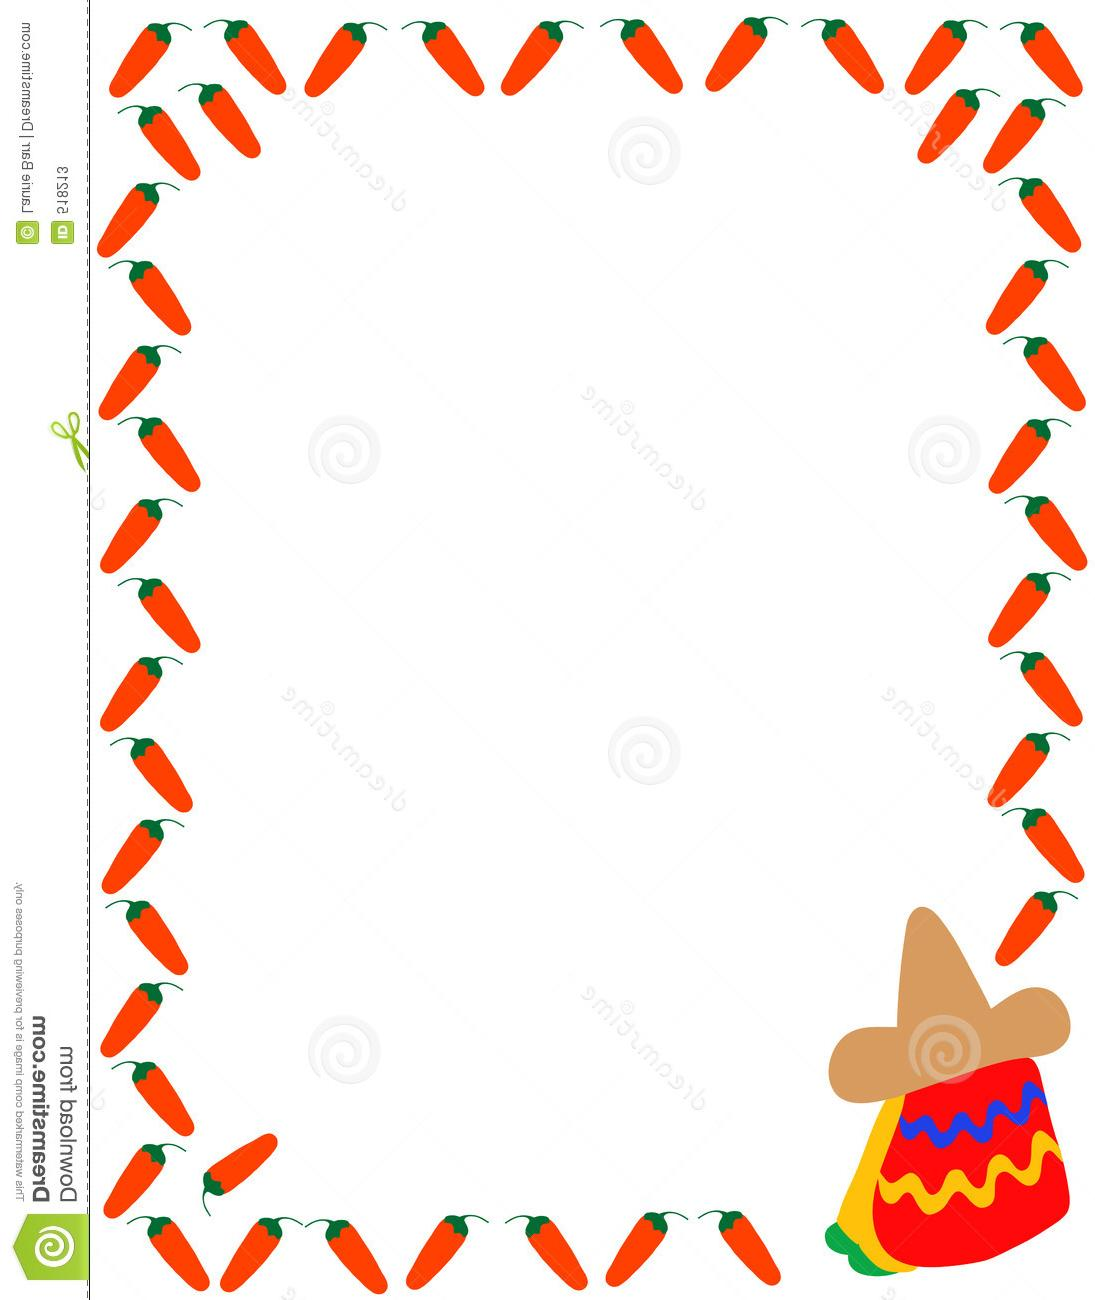 Mexico clipart borders vector royalty free download Mexican Border Clipart | Free download best Mexican Border Clipart ... vector royalty free download